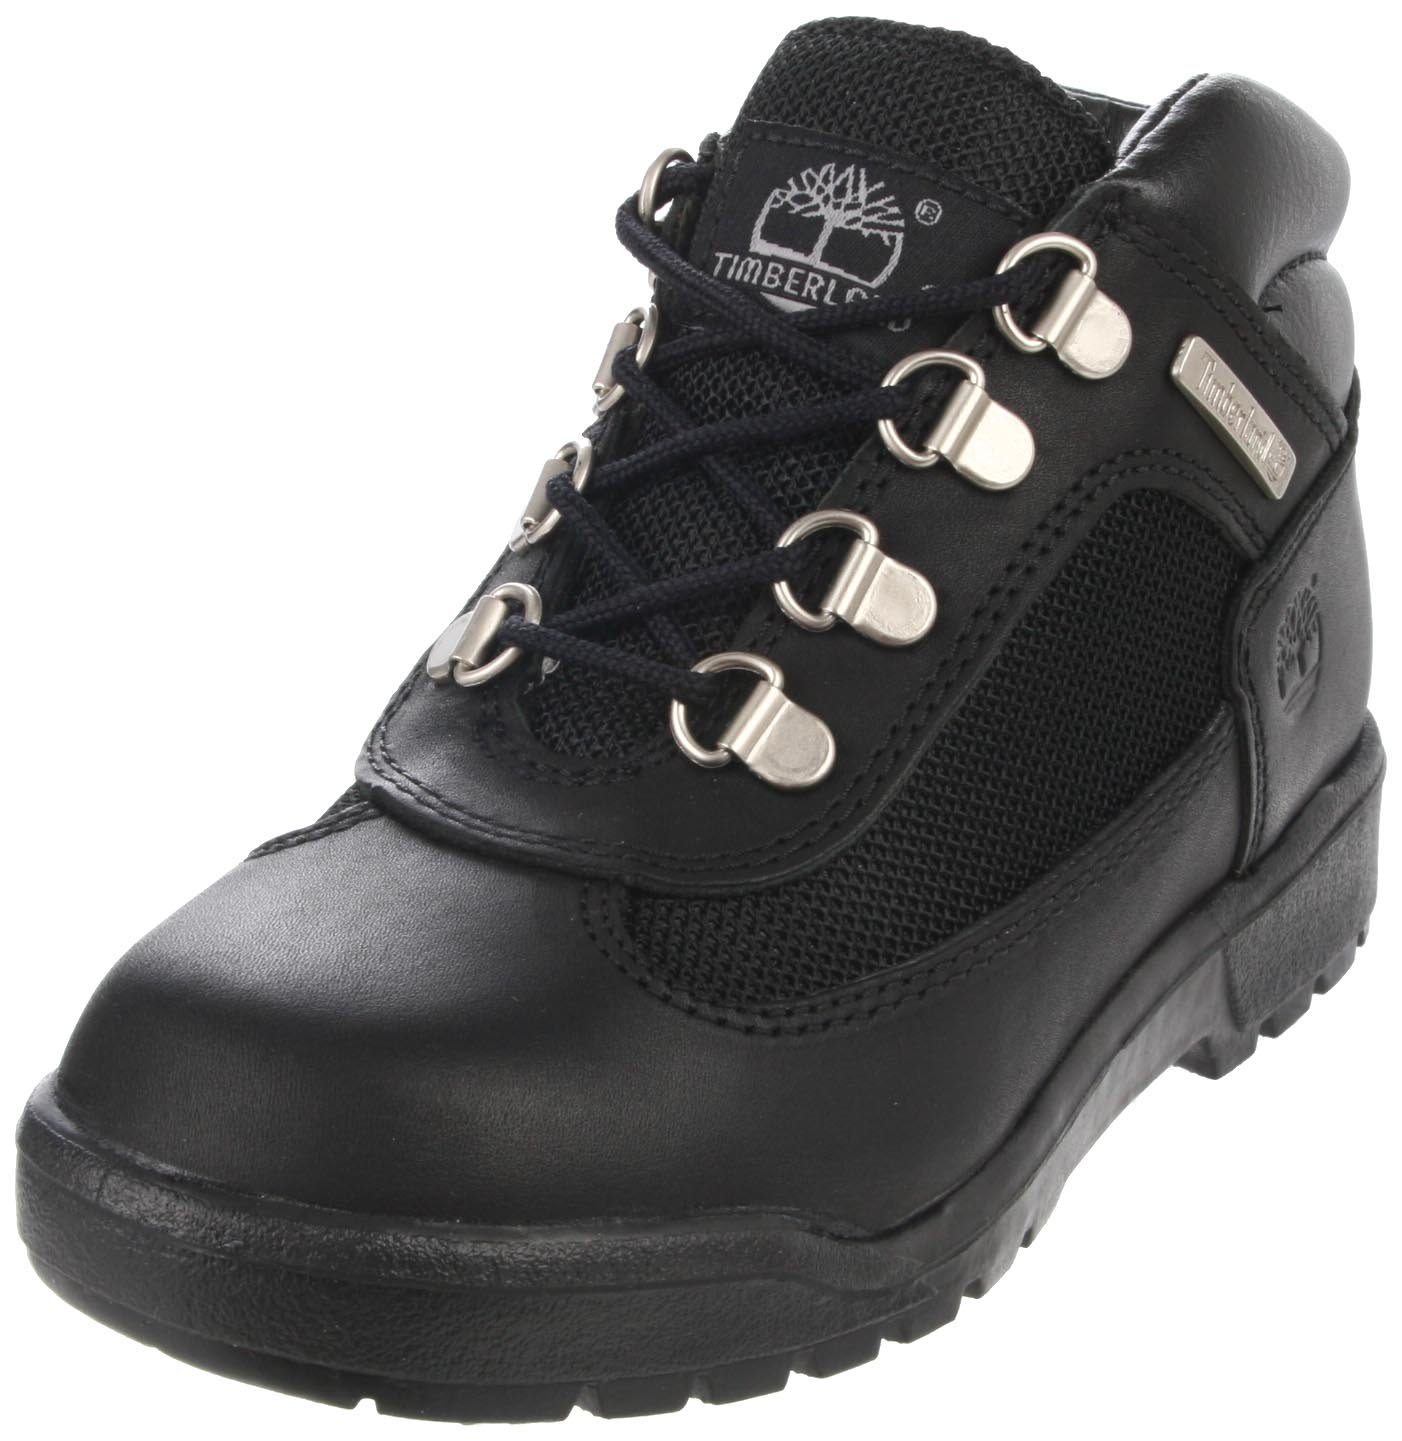 Timberland Leather and Fabric Field Boot (Toddler/Little Kid/Big Kid),Black,4.5 M US Big Kid